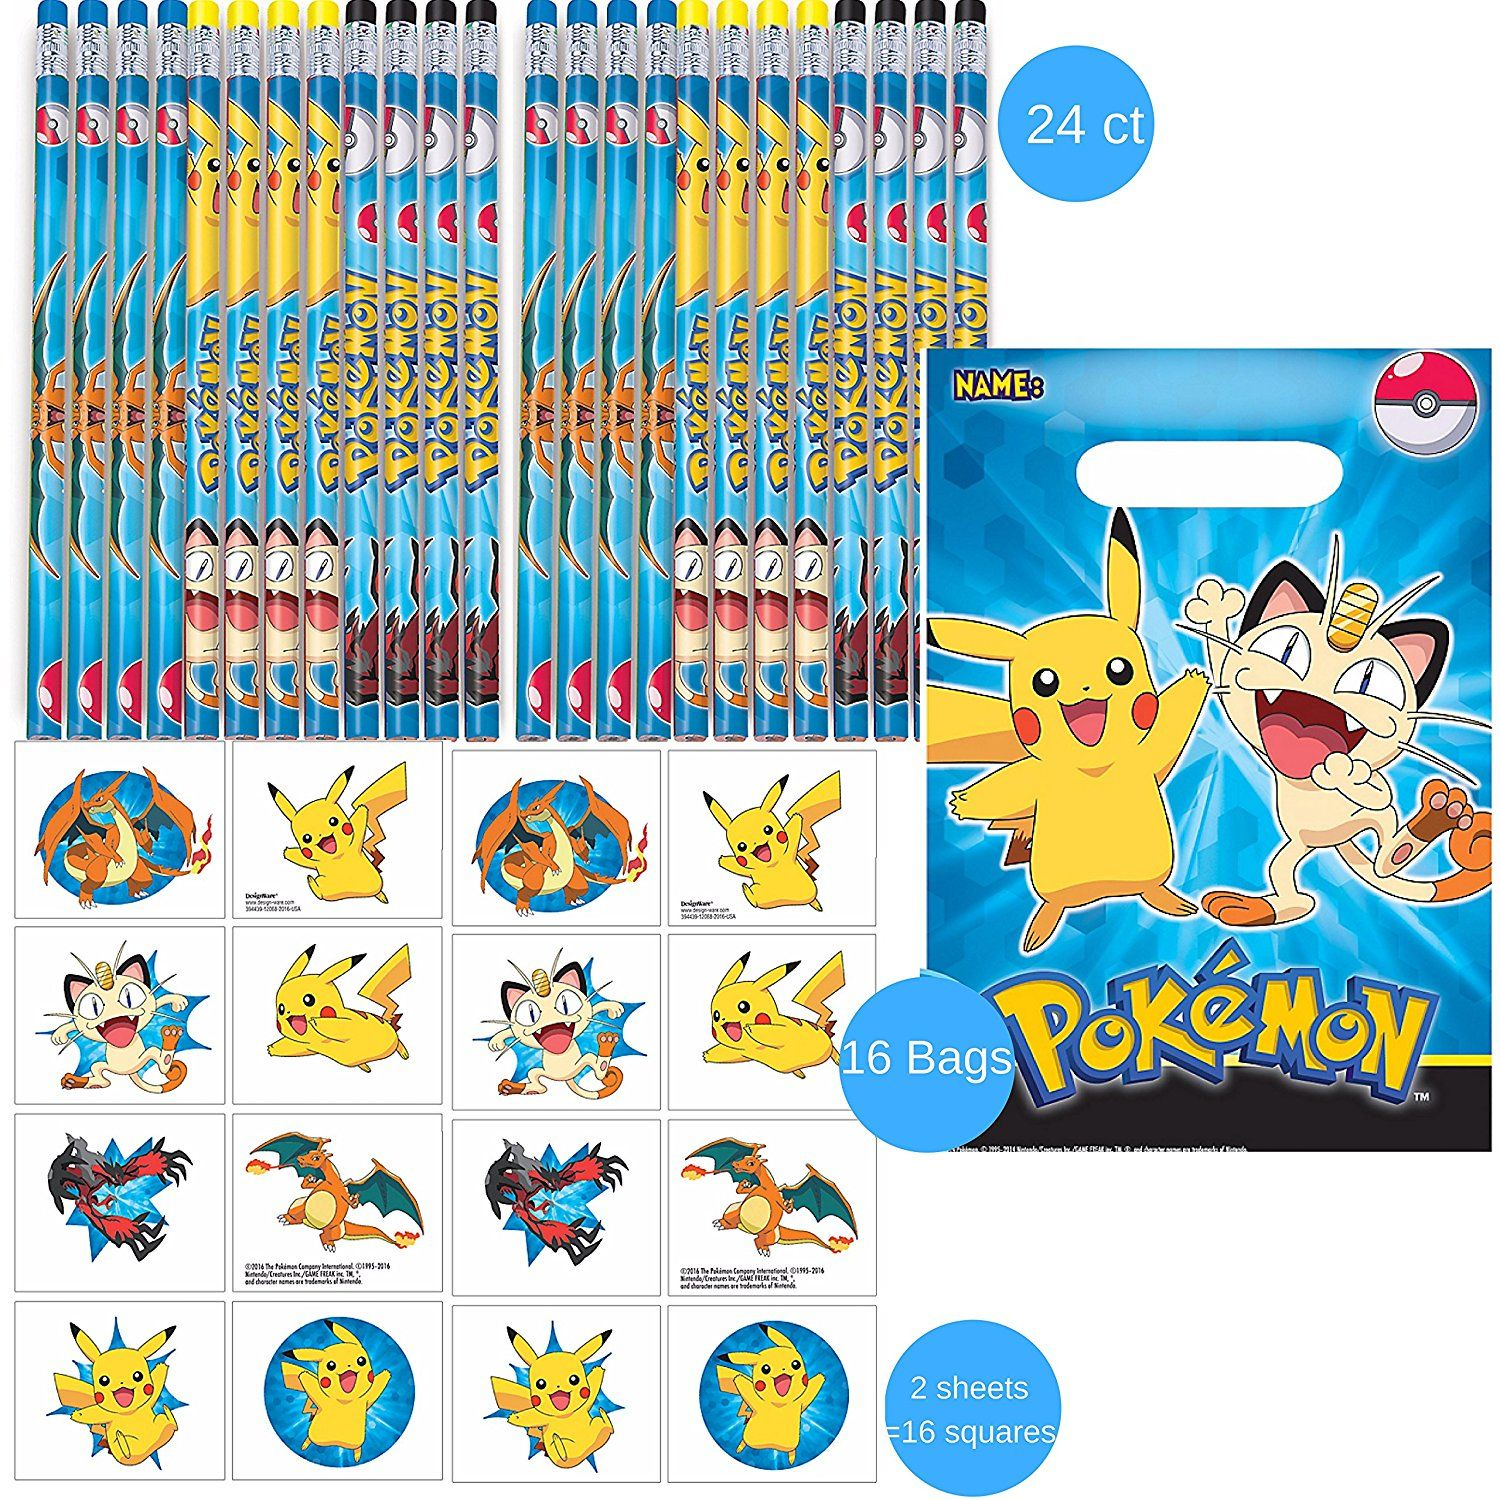 Amazon.com: Pokemon Party Favors: Pencils, Tattoos, Favor bags, 42 ...